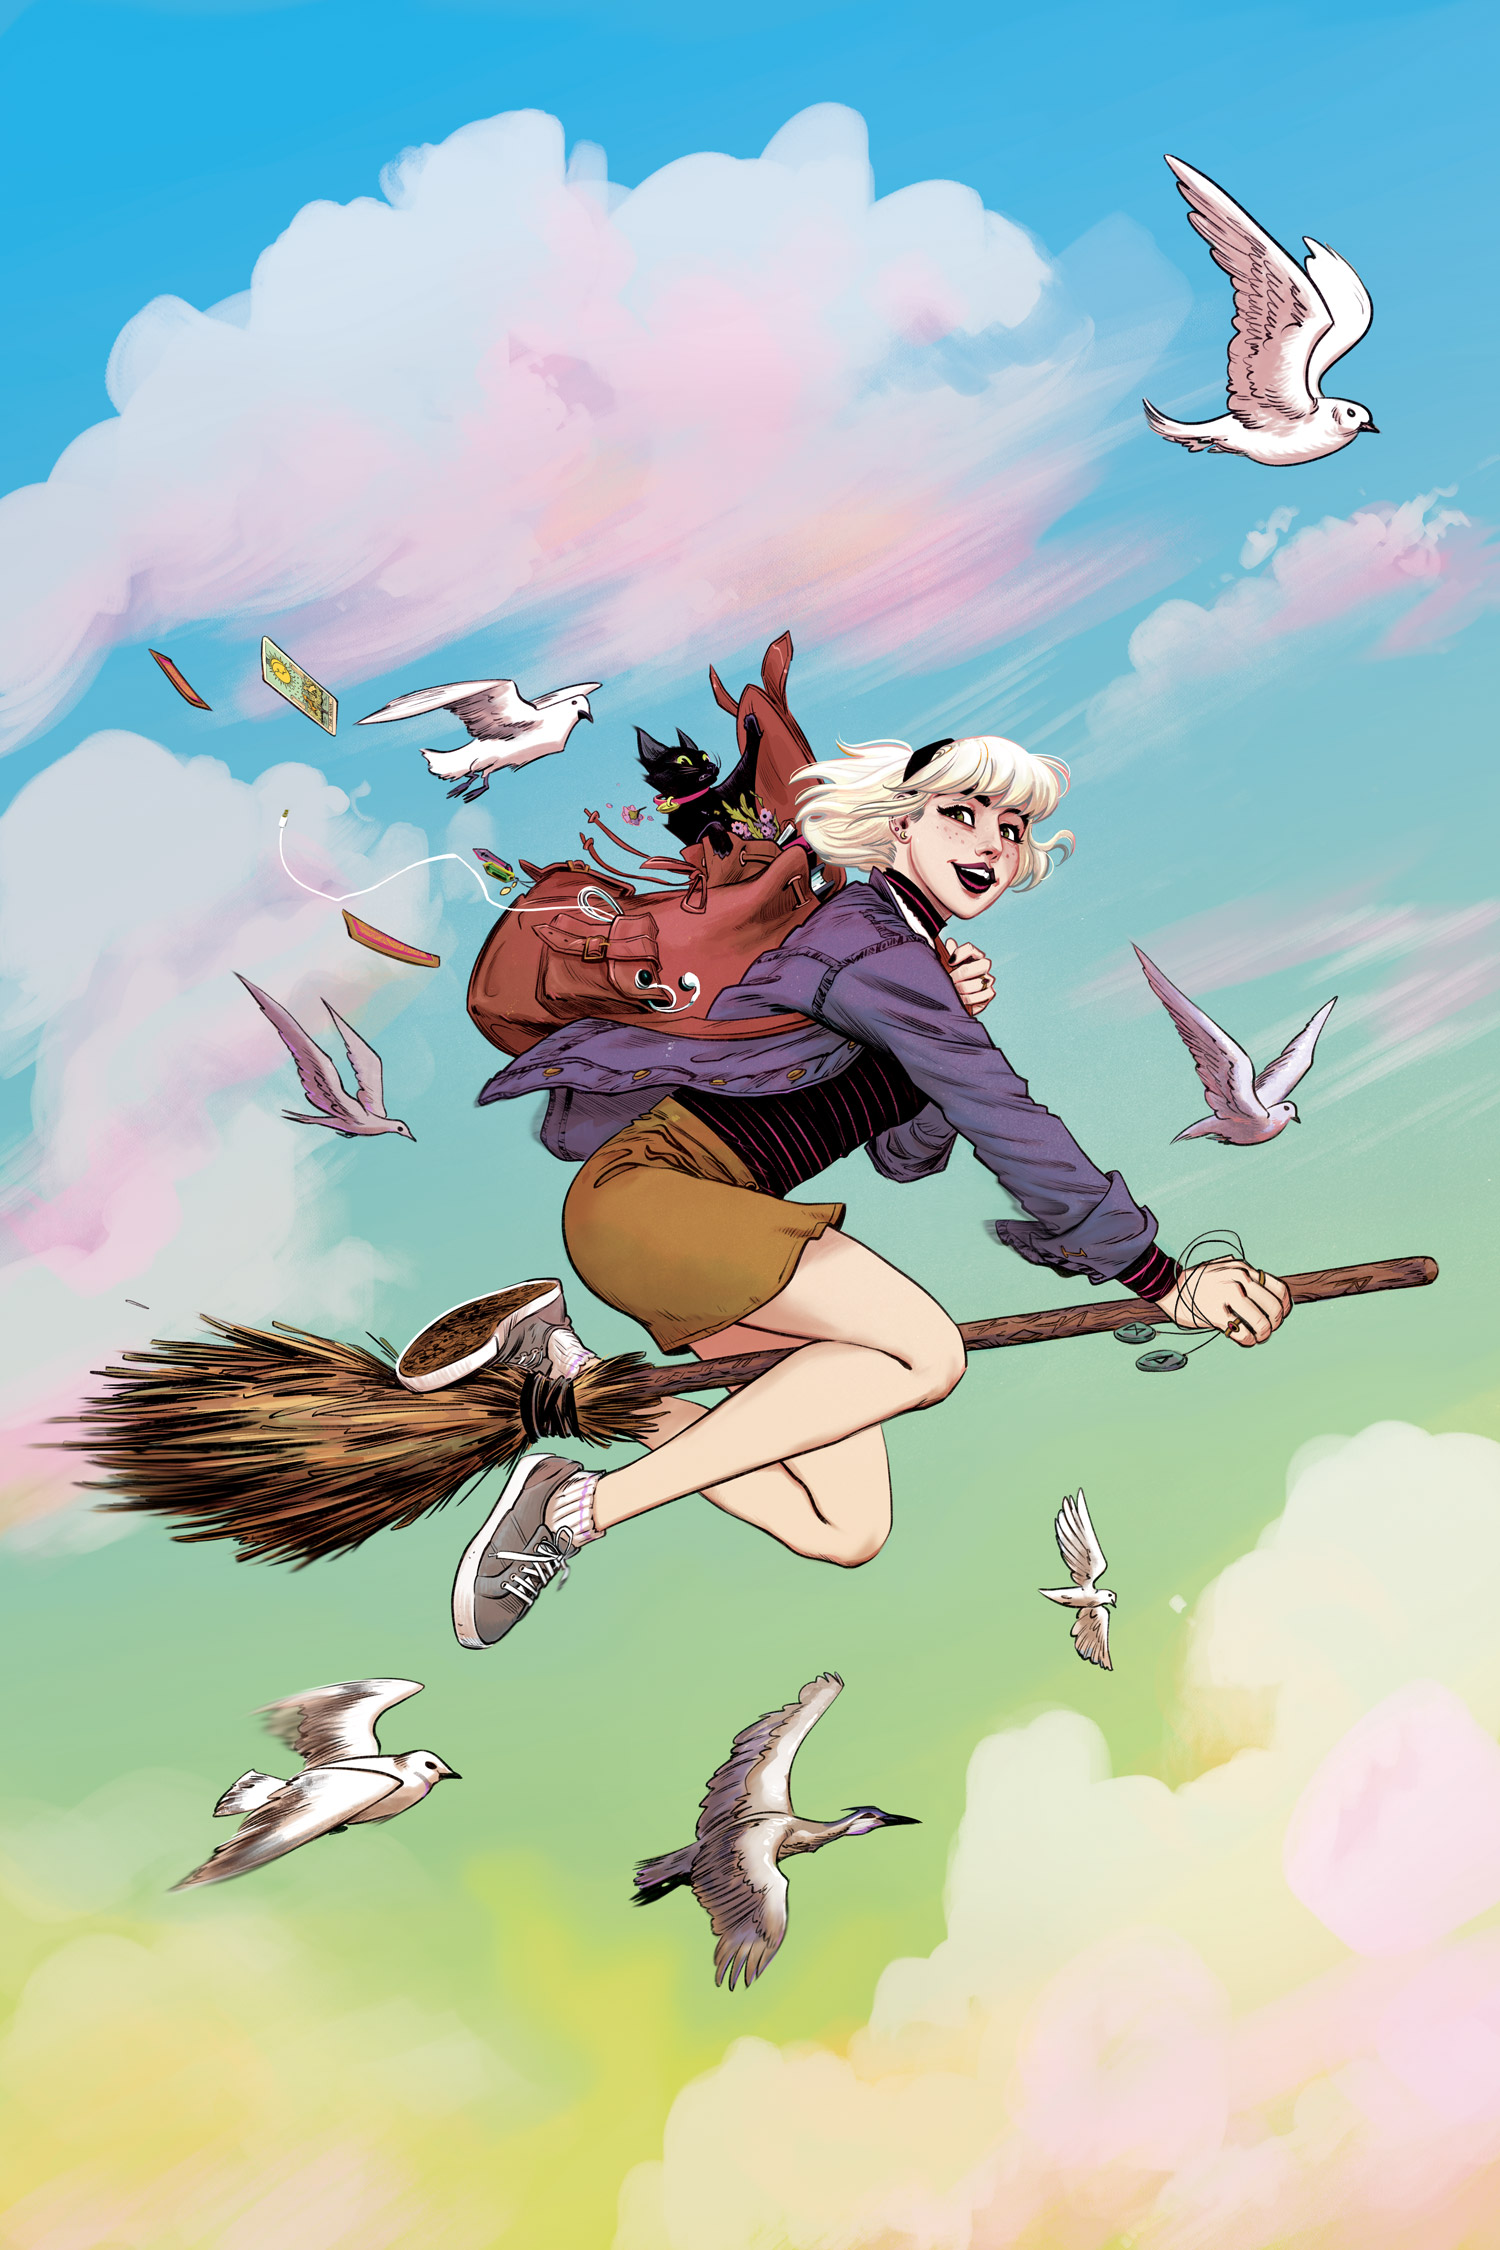 Sabrina The Teenage Witch Returns In New Series By Kelly